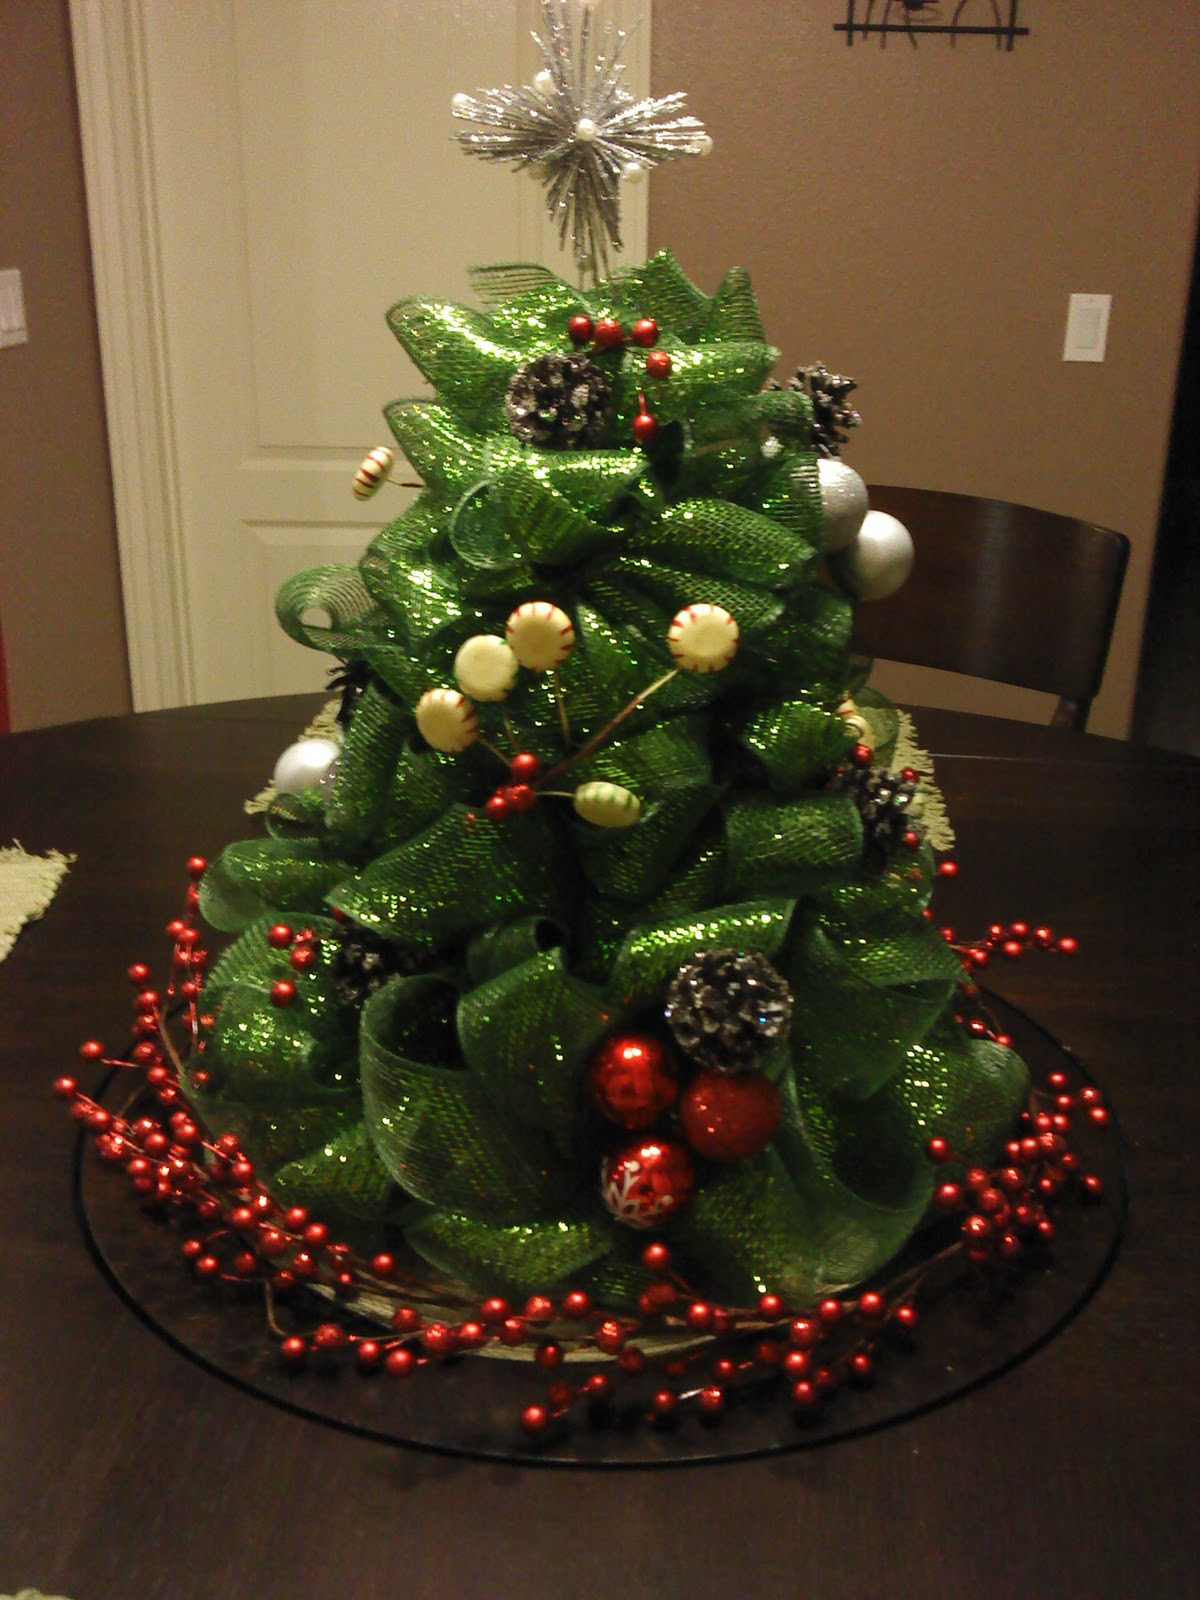 Christmas tree decorations with mesh - photo#53